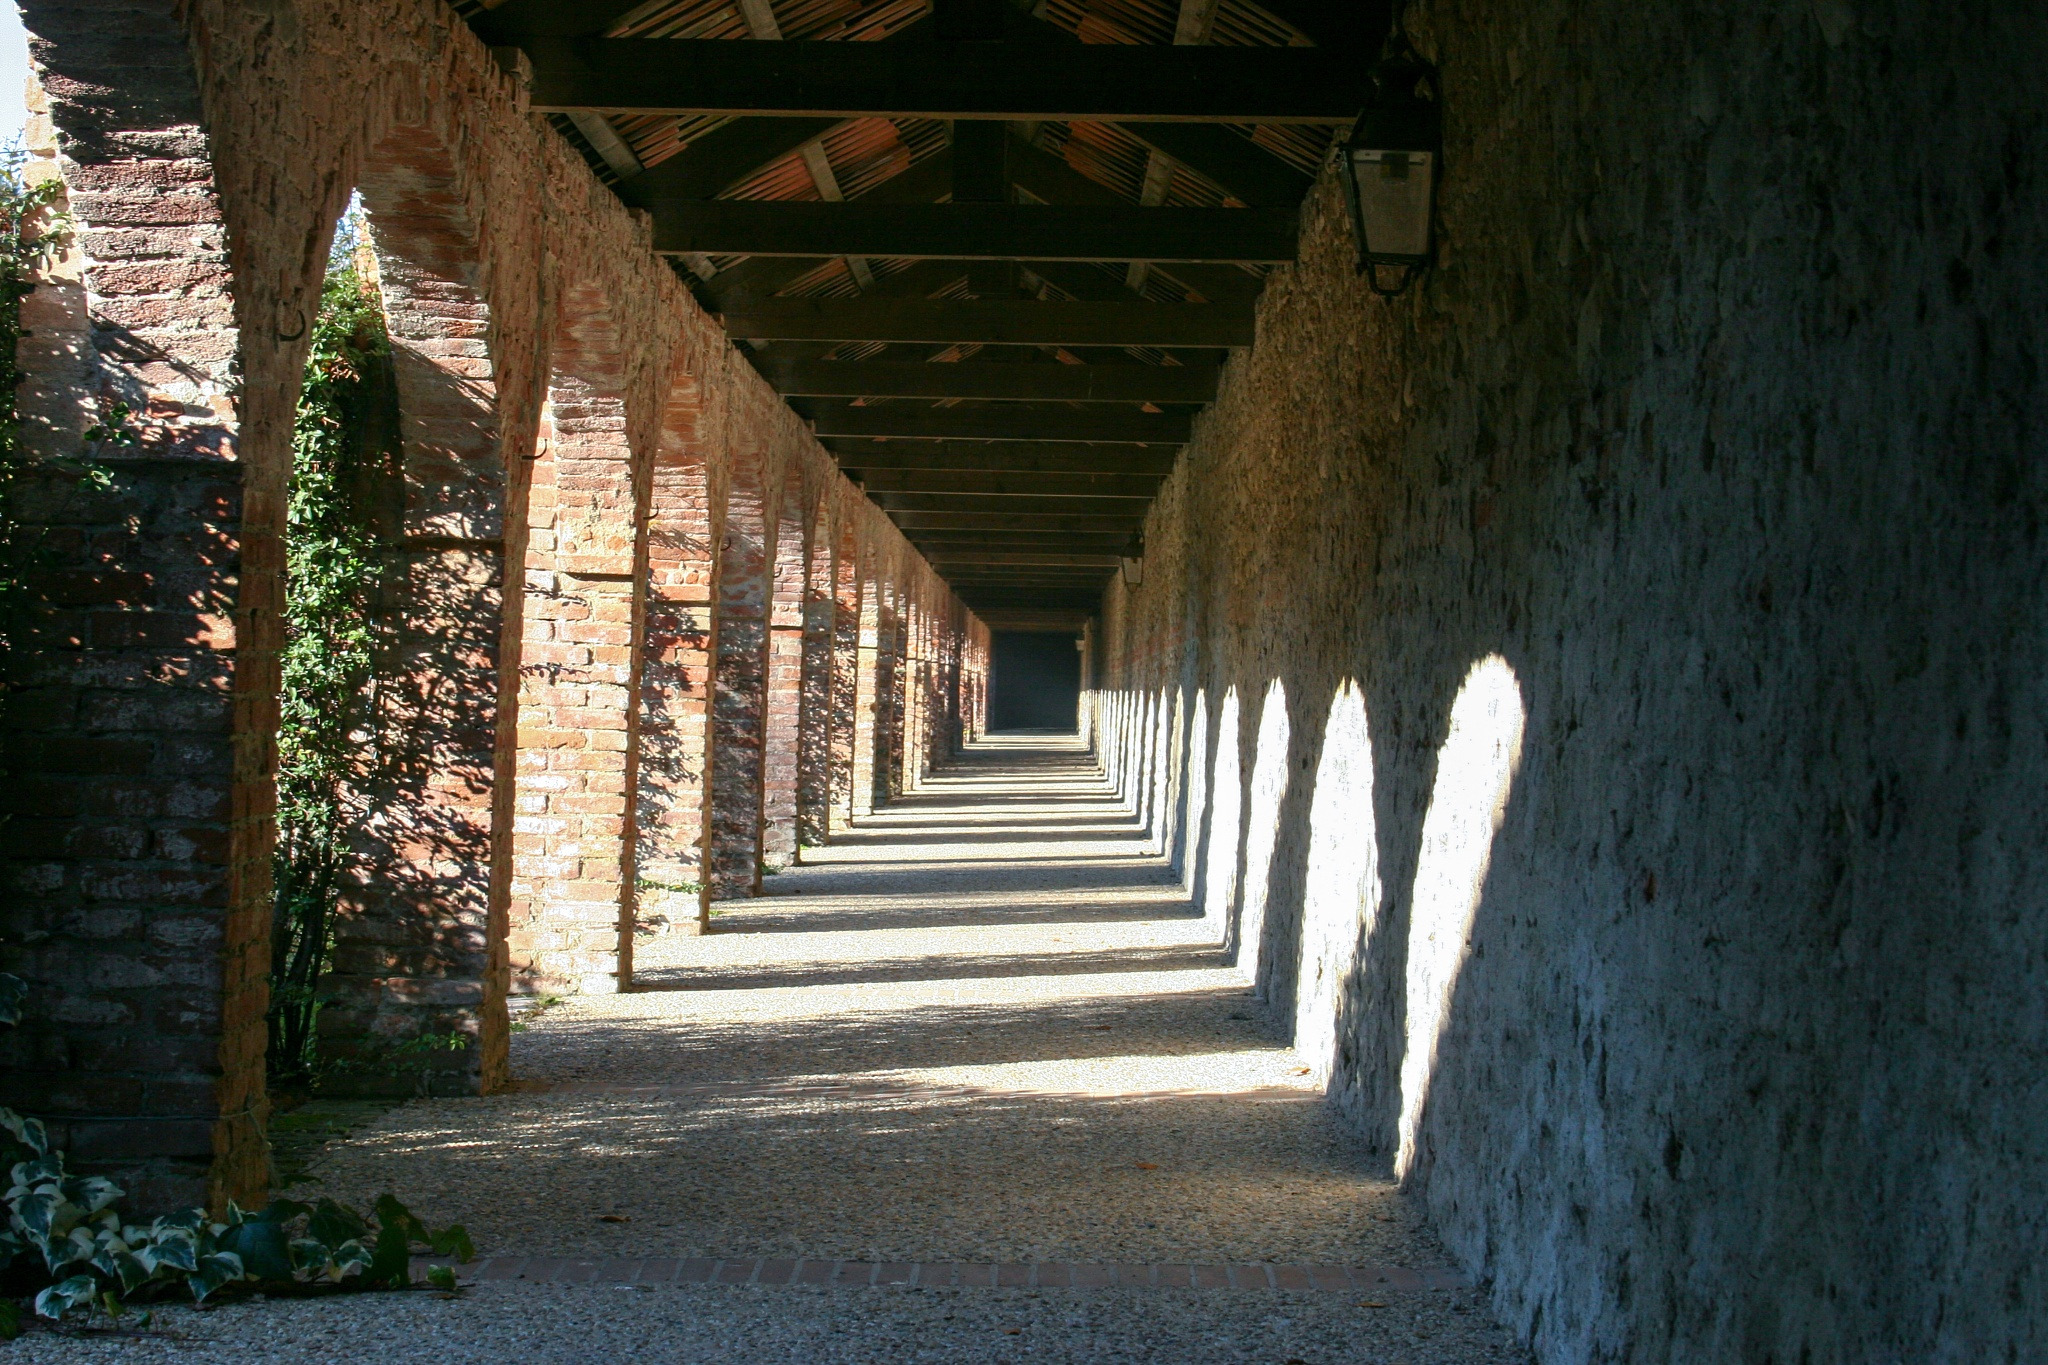 the cloister of silence by Carlo Orsettigh